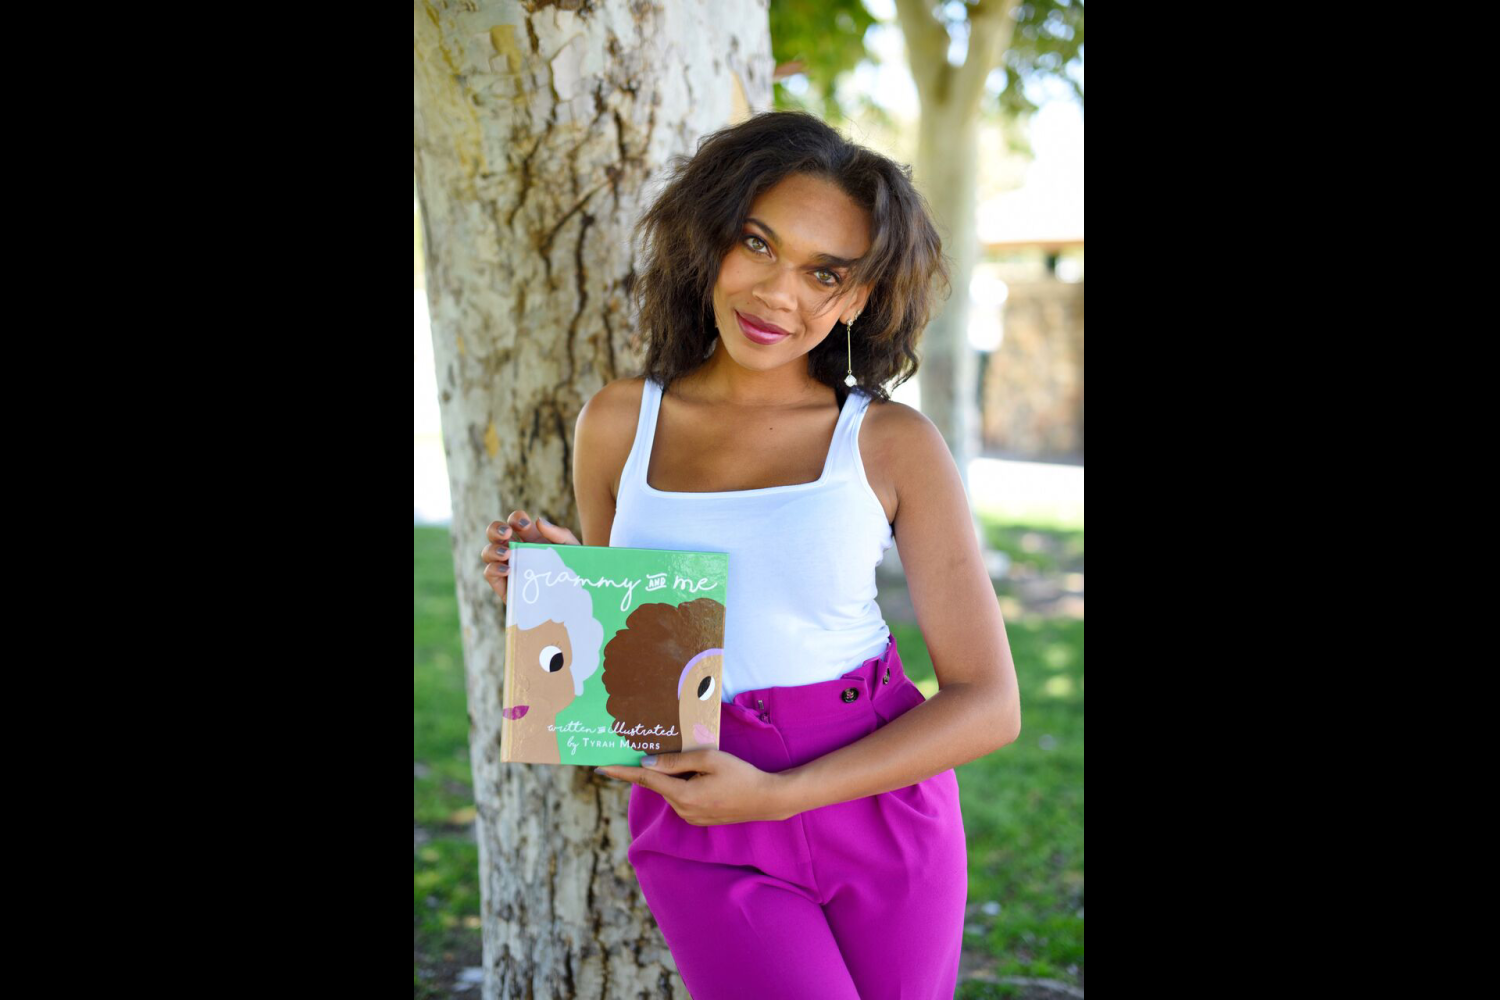 Tyrah Majors is the author and illustrator of 'Grammy and Me' (Image: Tyrah Majors)